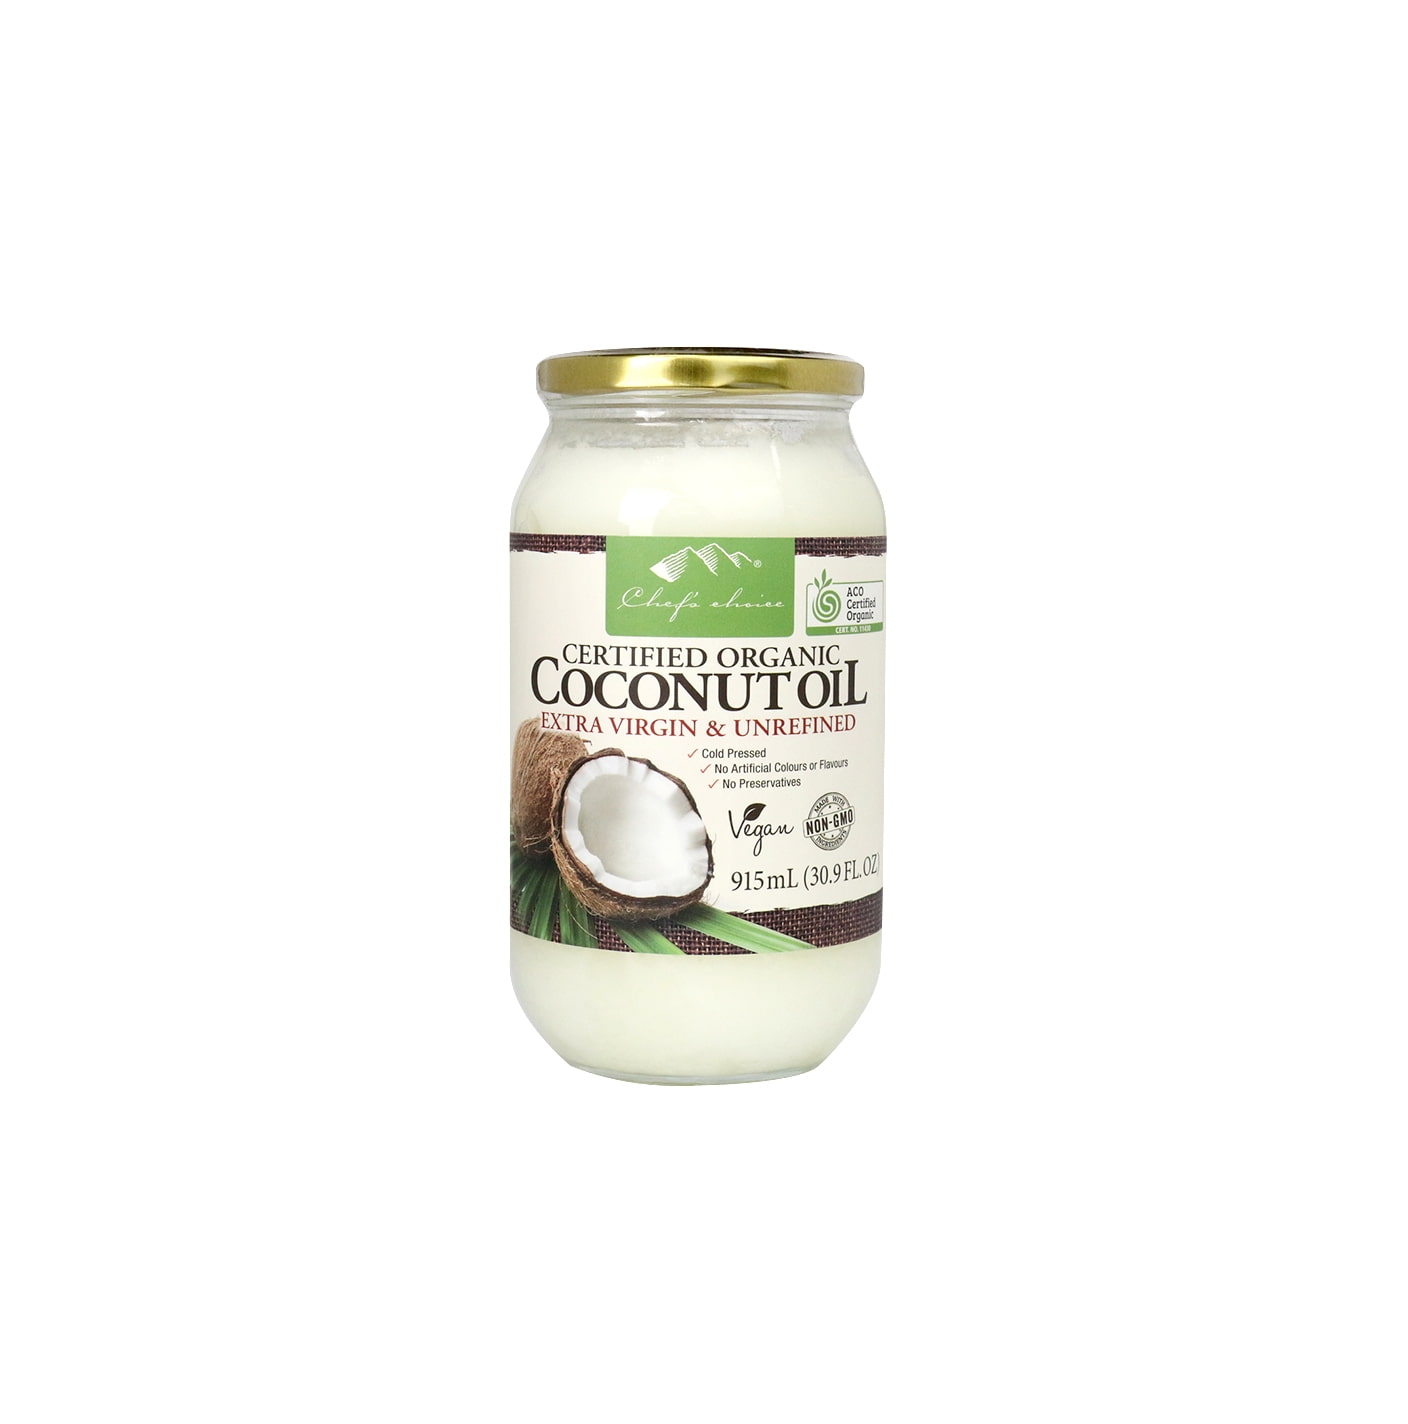 Org Coconut Oil Extra Virgin & Unrefined 915mL